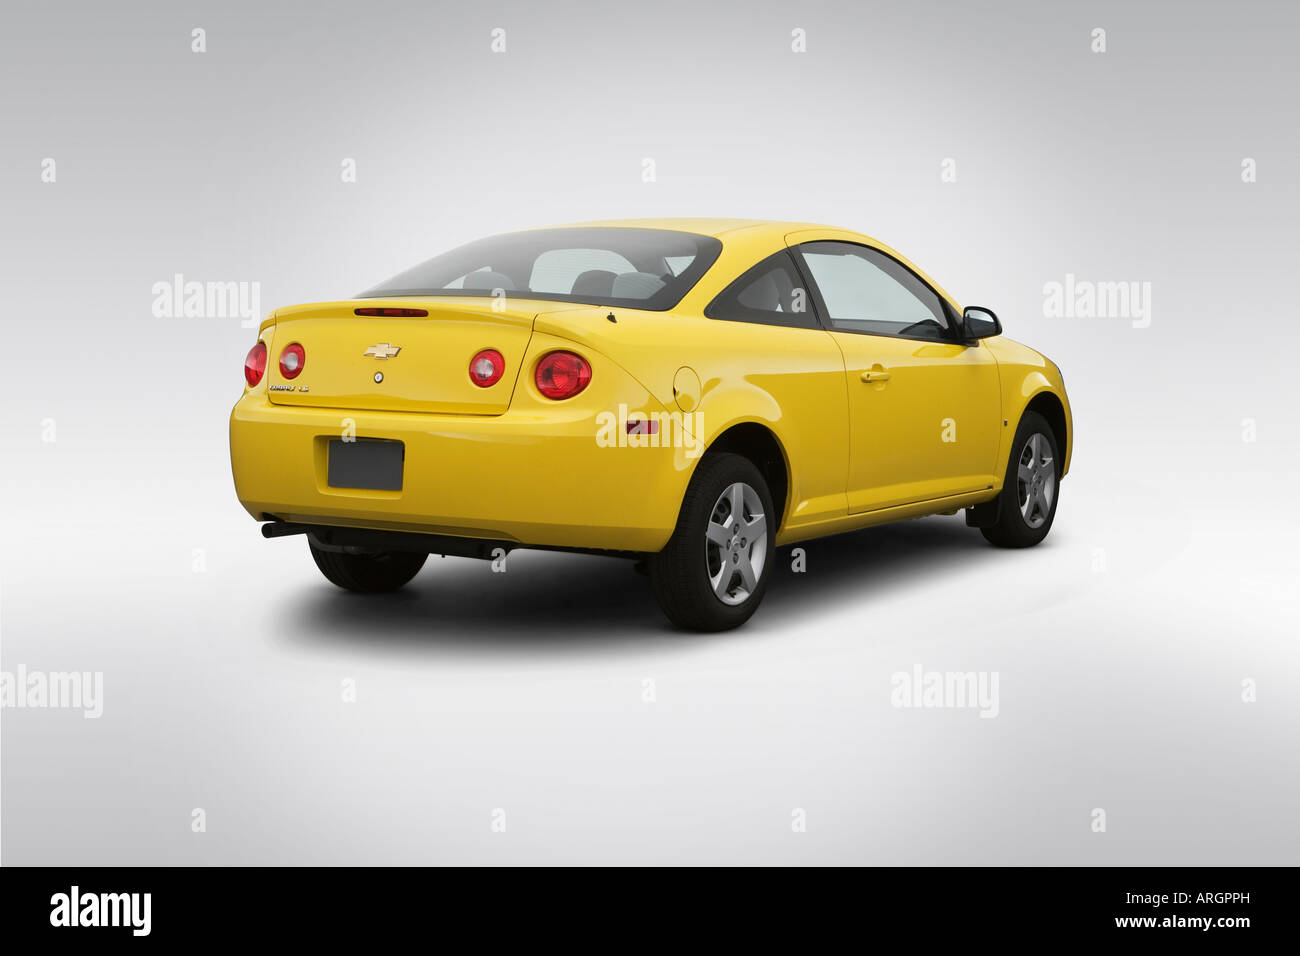 2007 Chevrolet Cobalt Ls In Yellow Rear Angle View Stock Photo Alamy